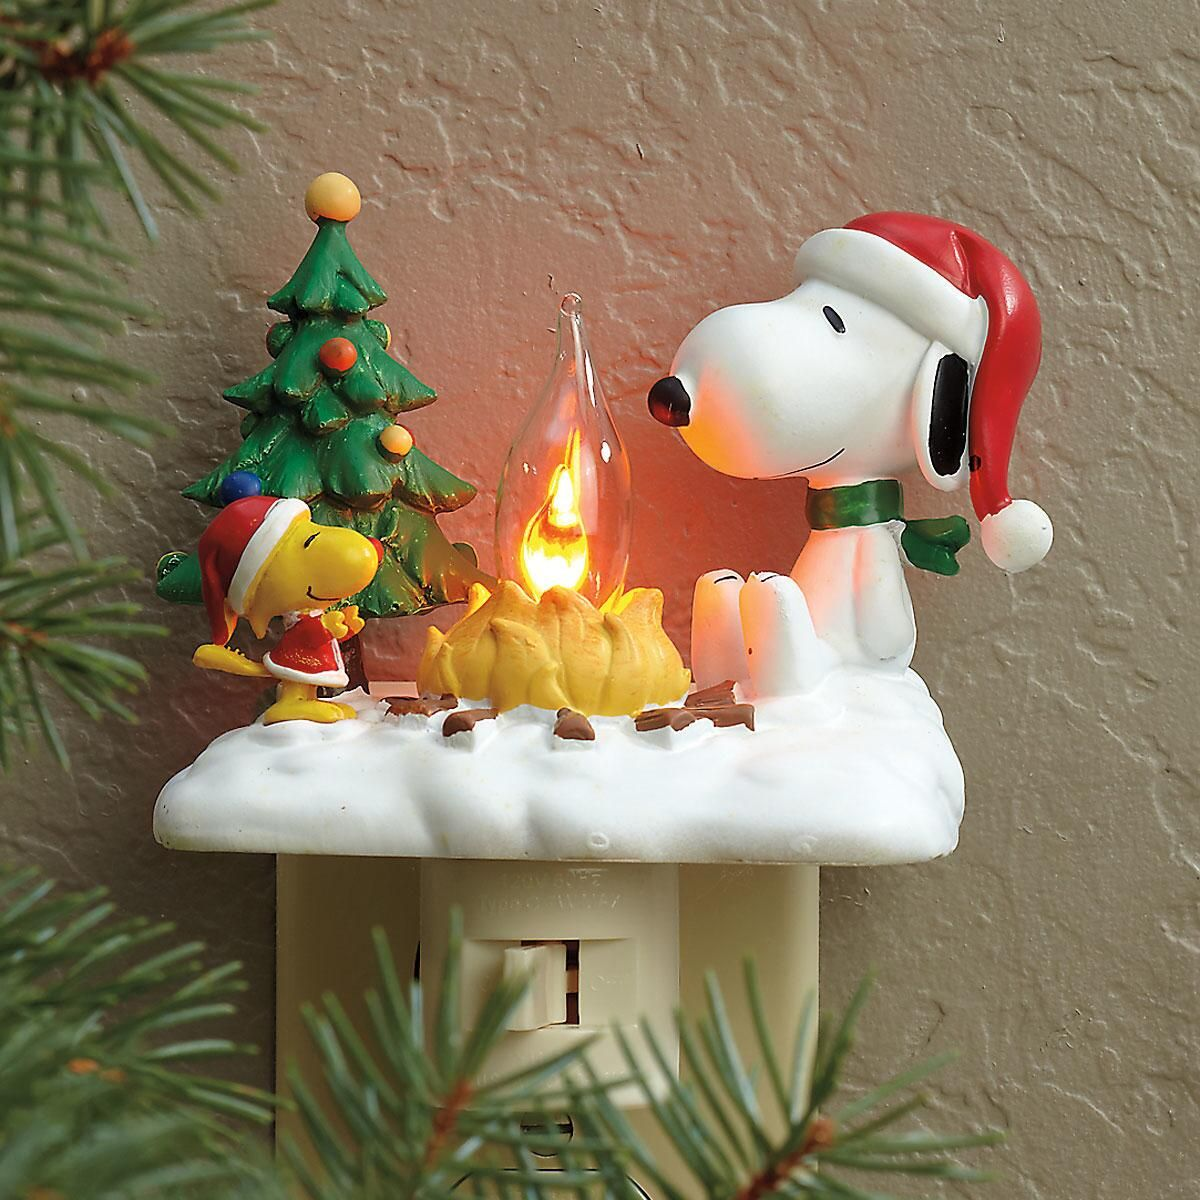 Peanuts Snoopy And Woodstock By Campfire Night Light